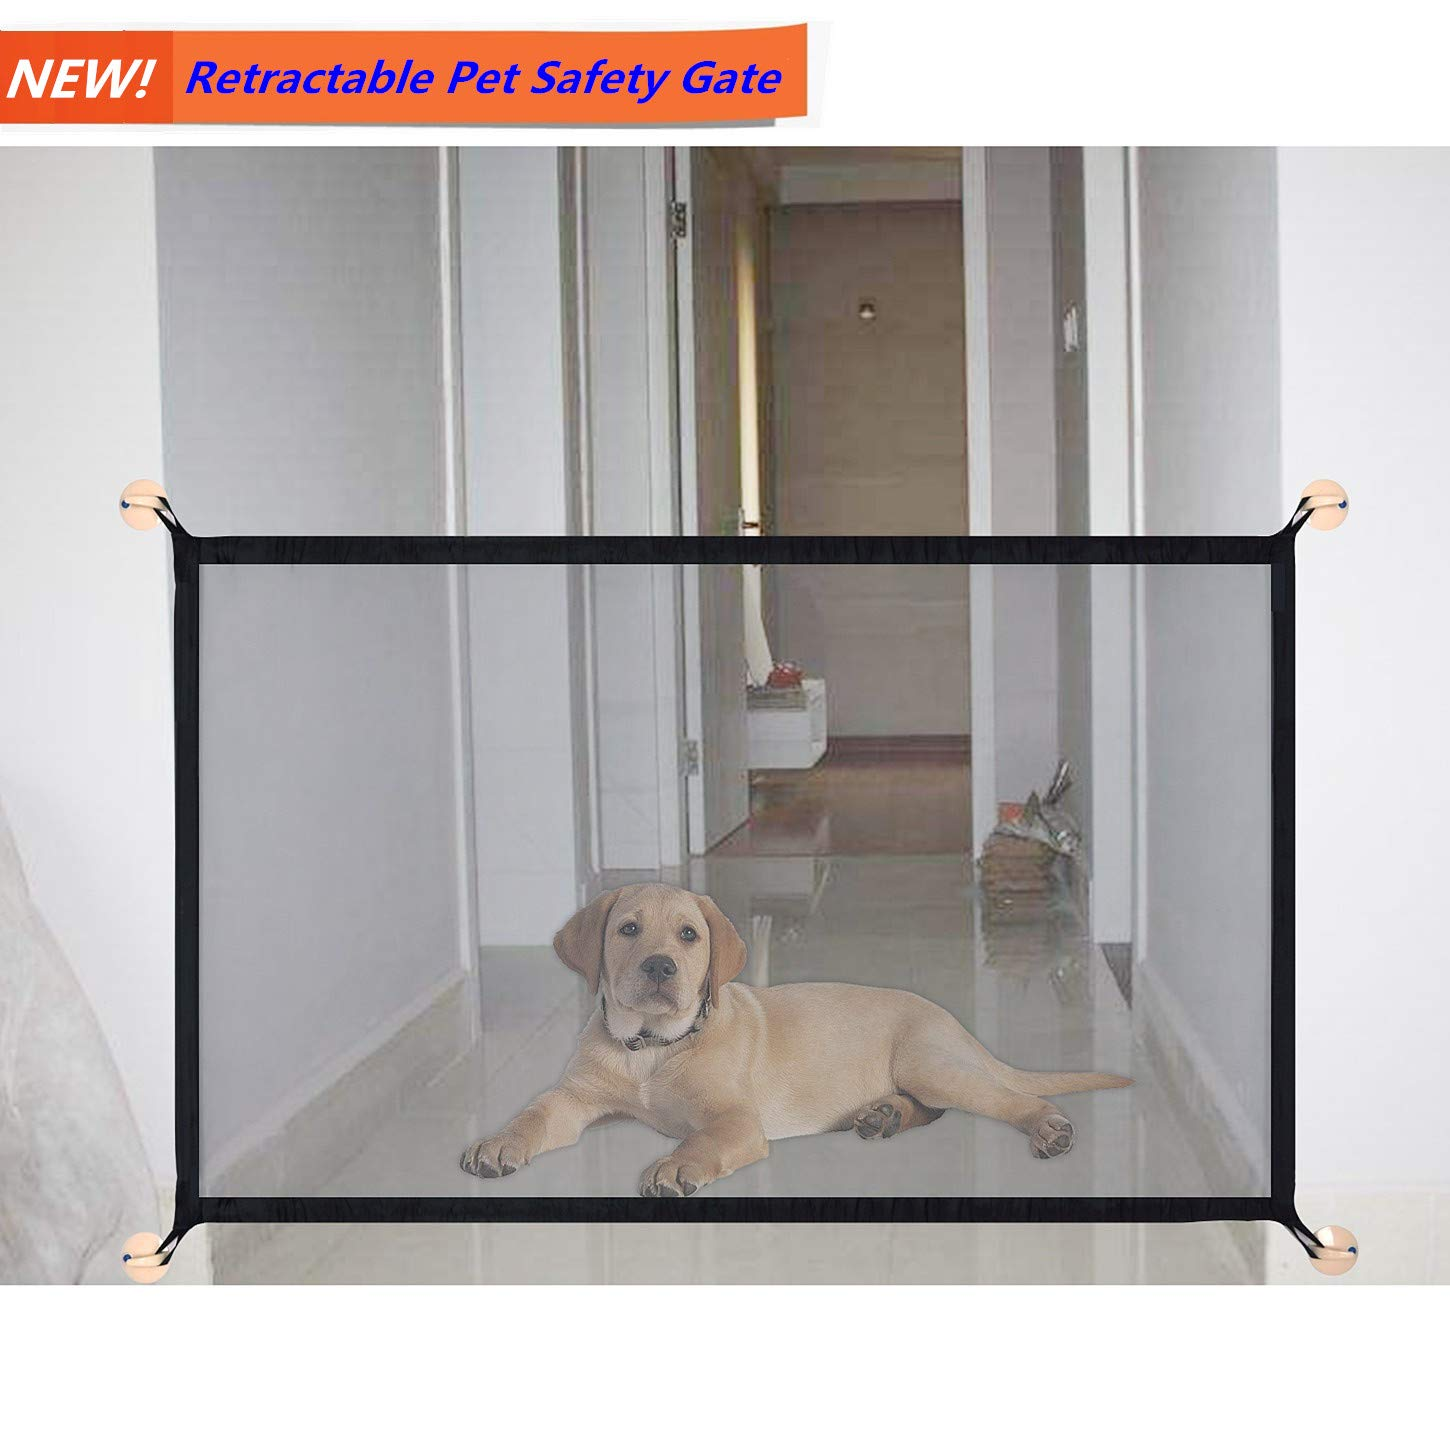 Magic Gate Portable Folding Safe Guard Install Anywhere Pet Safety Enclosure Commercial Magic Gate As Seen On TV(L: 70.8 inches x W:28.5 inches,can be Adjustable)